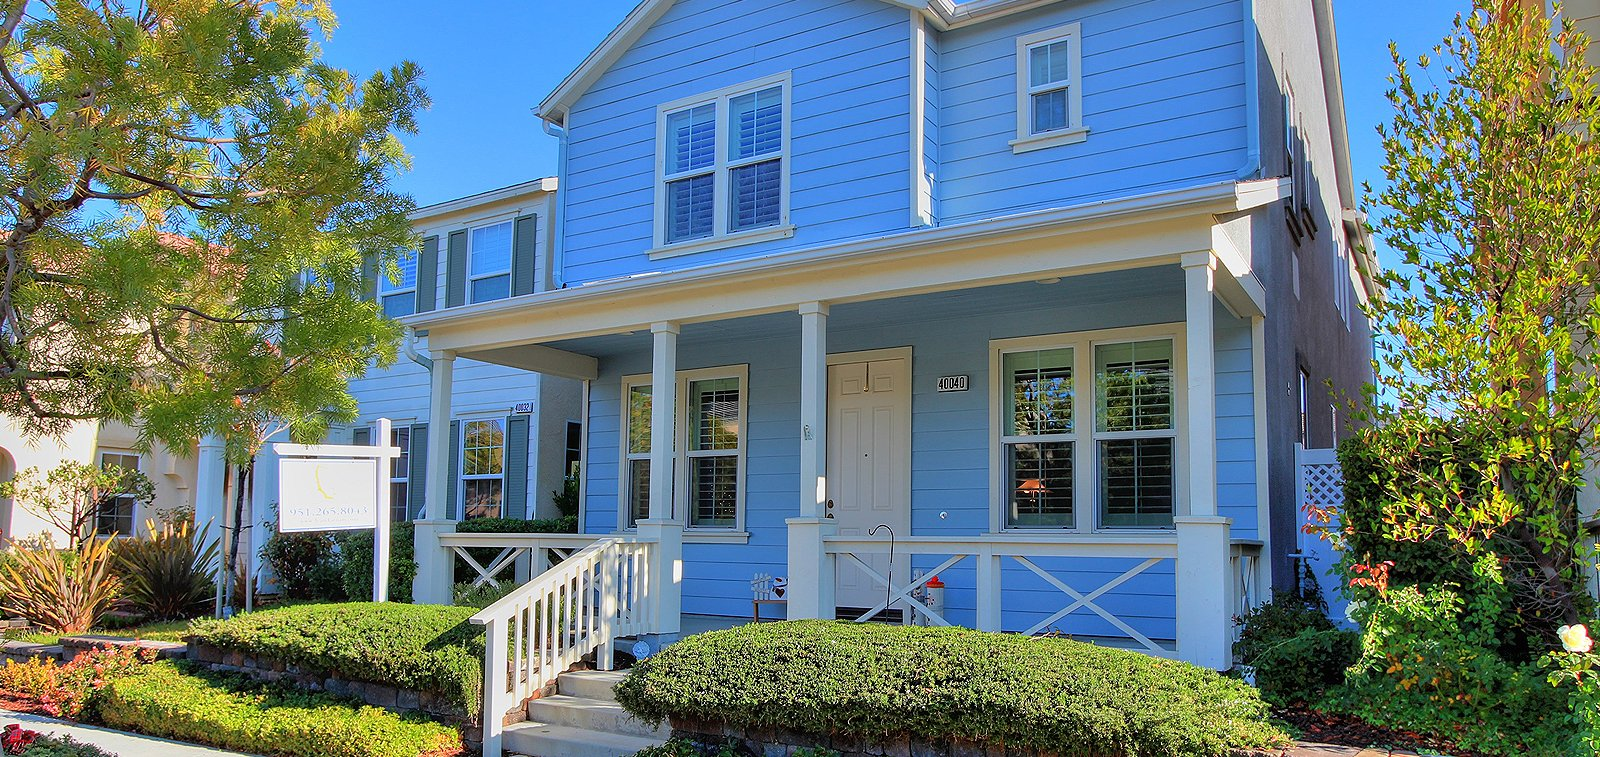 THE HENSLEY GROUP REAL ESTATE - front view of a blue house